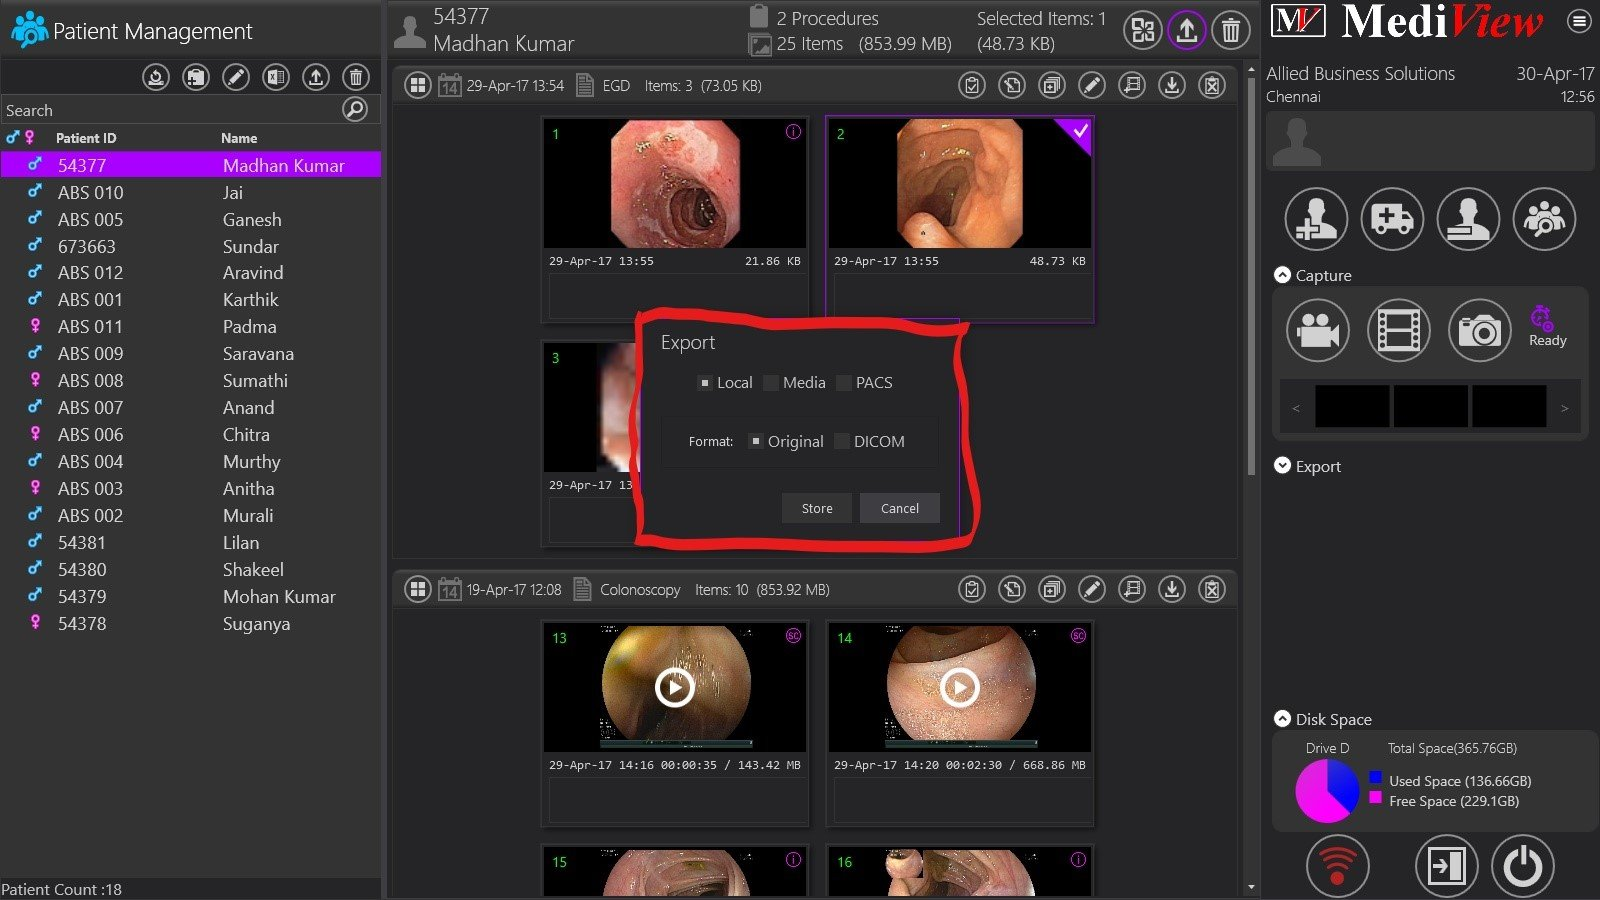 Option to export image in DICOM format provided in endoscopy image capture system